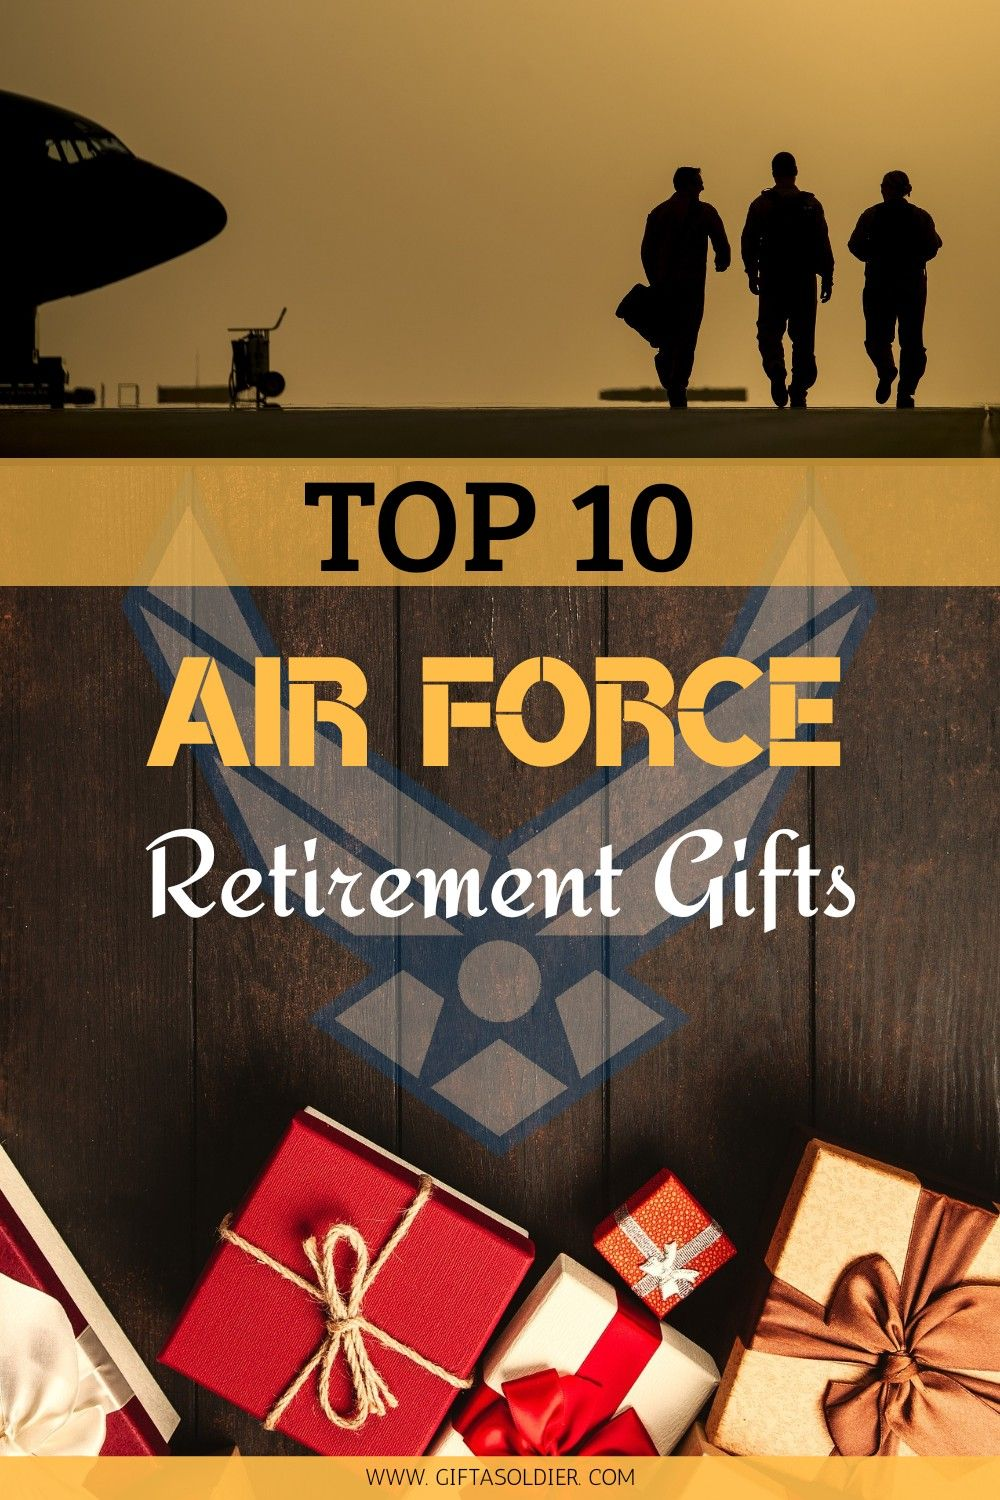 Top 10 Air Force Retirement Gift Ideas To Win The Heart Of